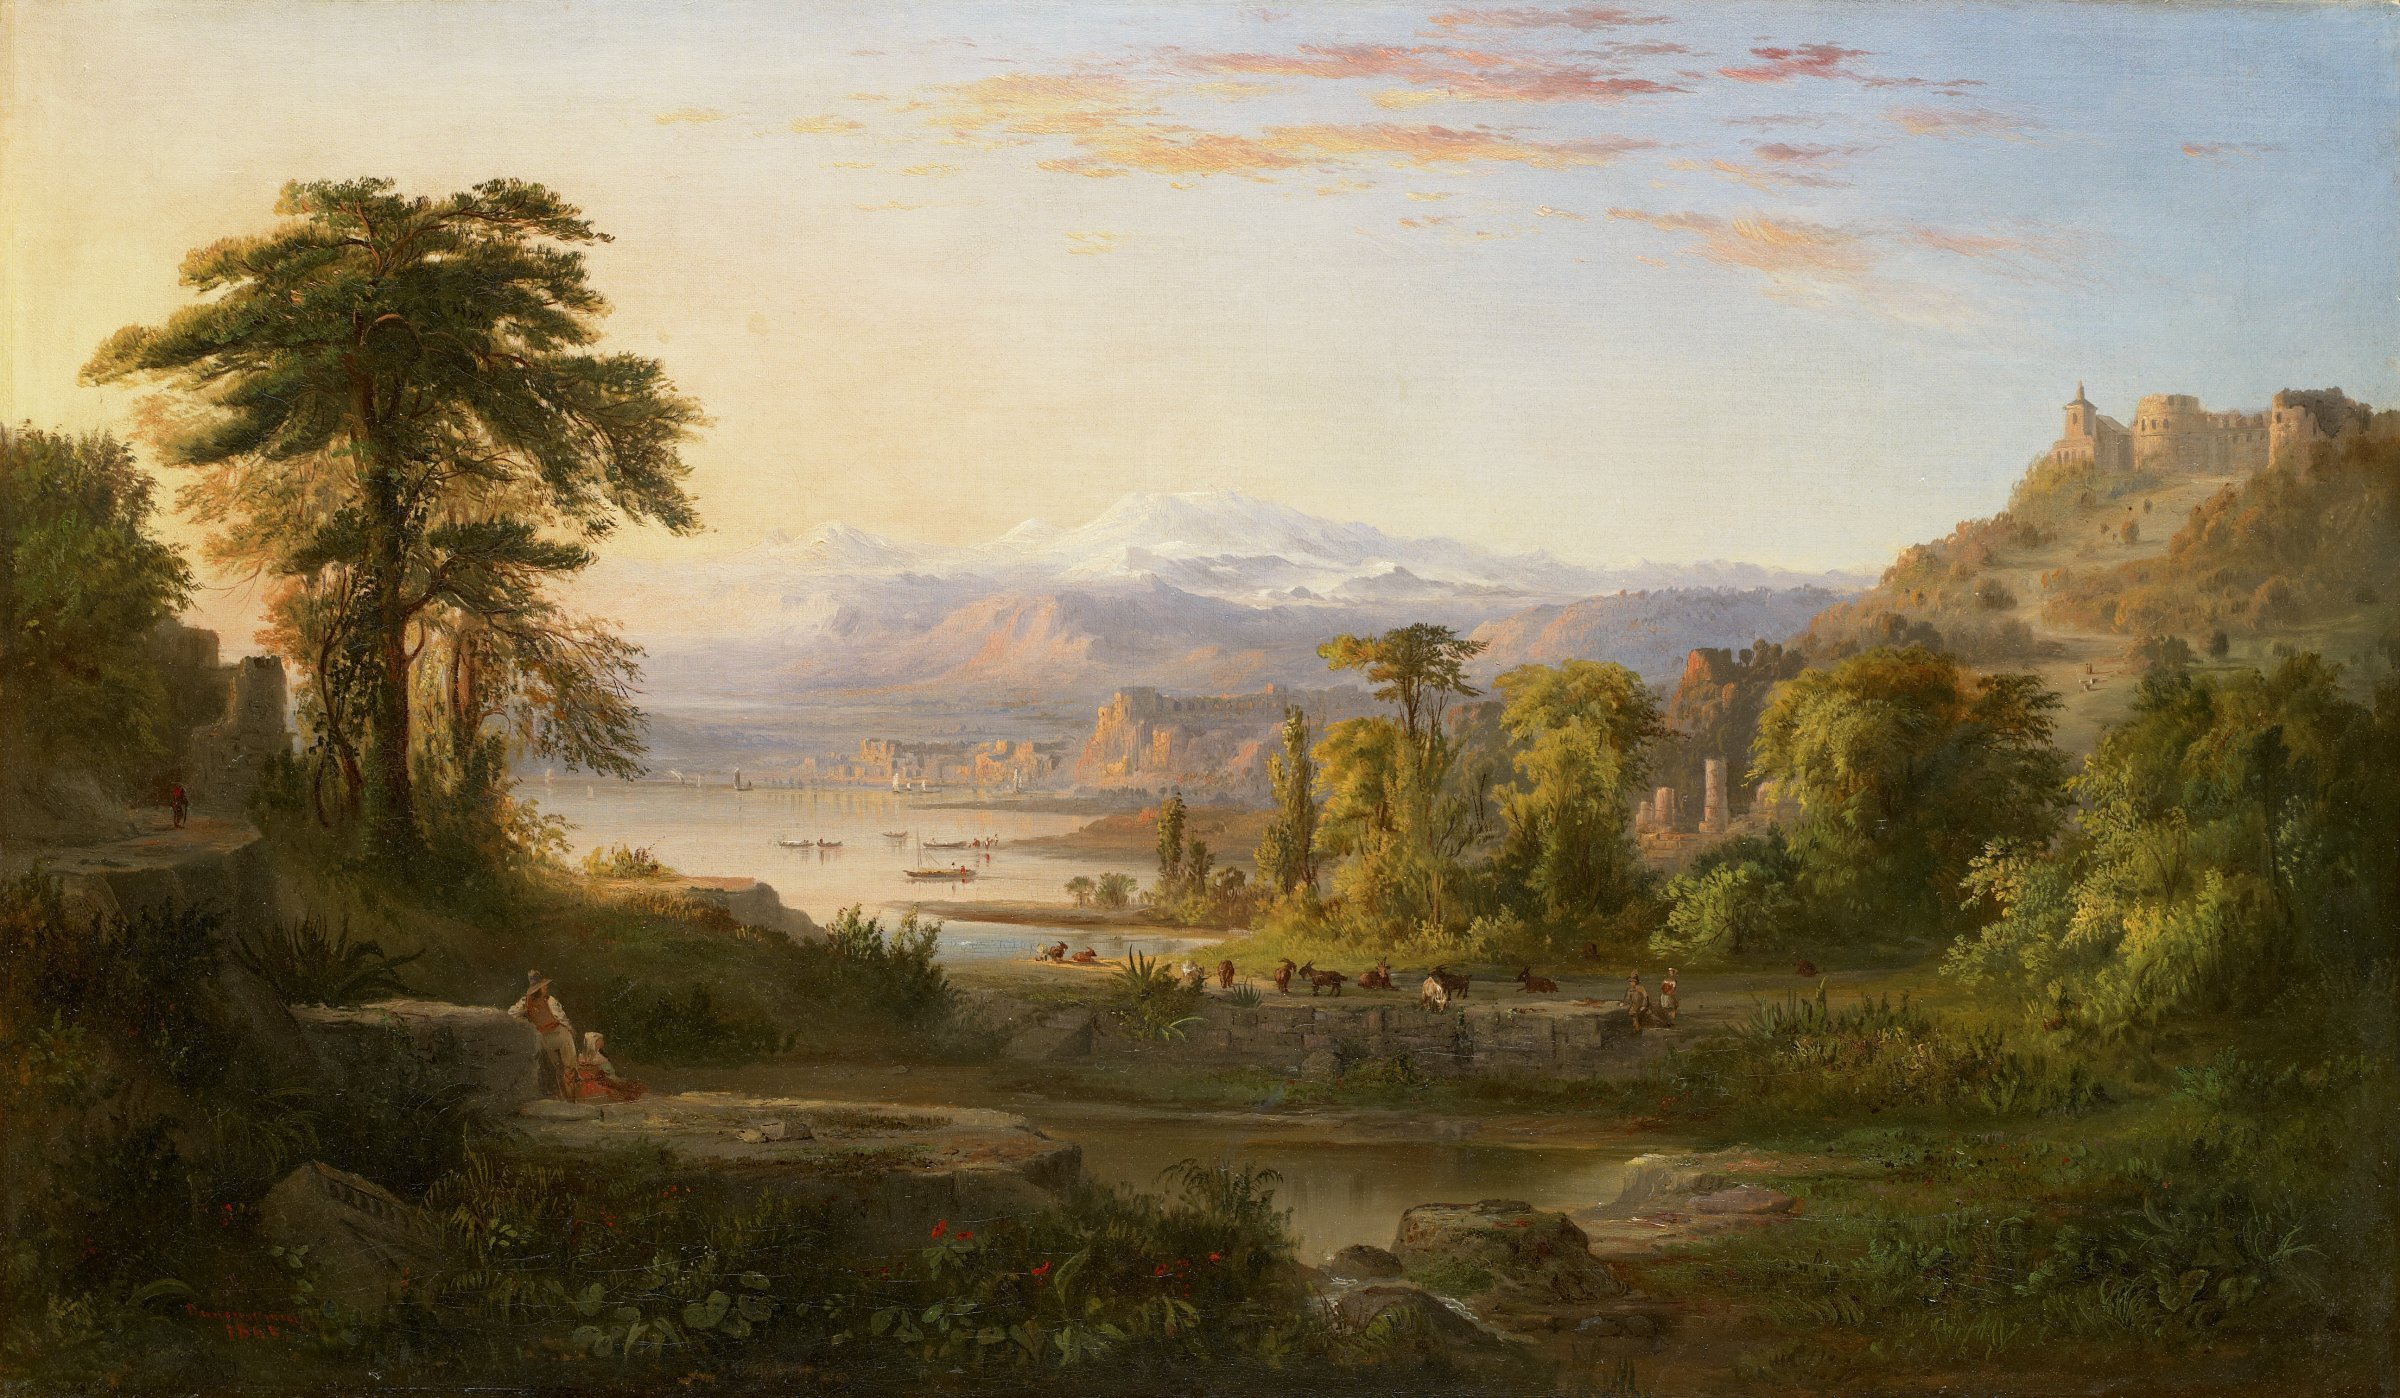 In this painted landscape, two figures, a man and a woman, rest in the left foreground, peering across a body of water to the opposite bank, where animals graze and another couple rests on the ground. In the background, to the left, boats are moored before Italian ruins, while snow-capped mountains rise in the distance. The entire scene is bathed in a warm peach-pink light emanating from the left.